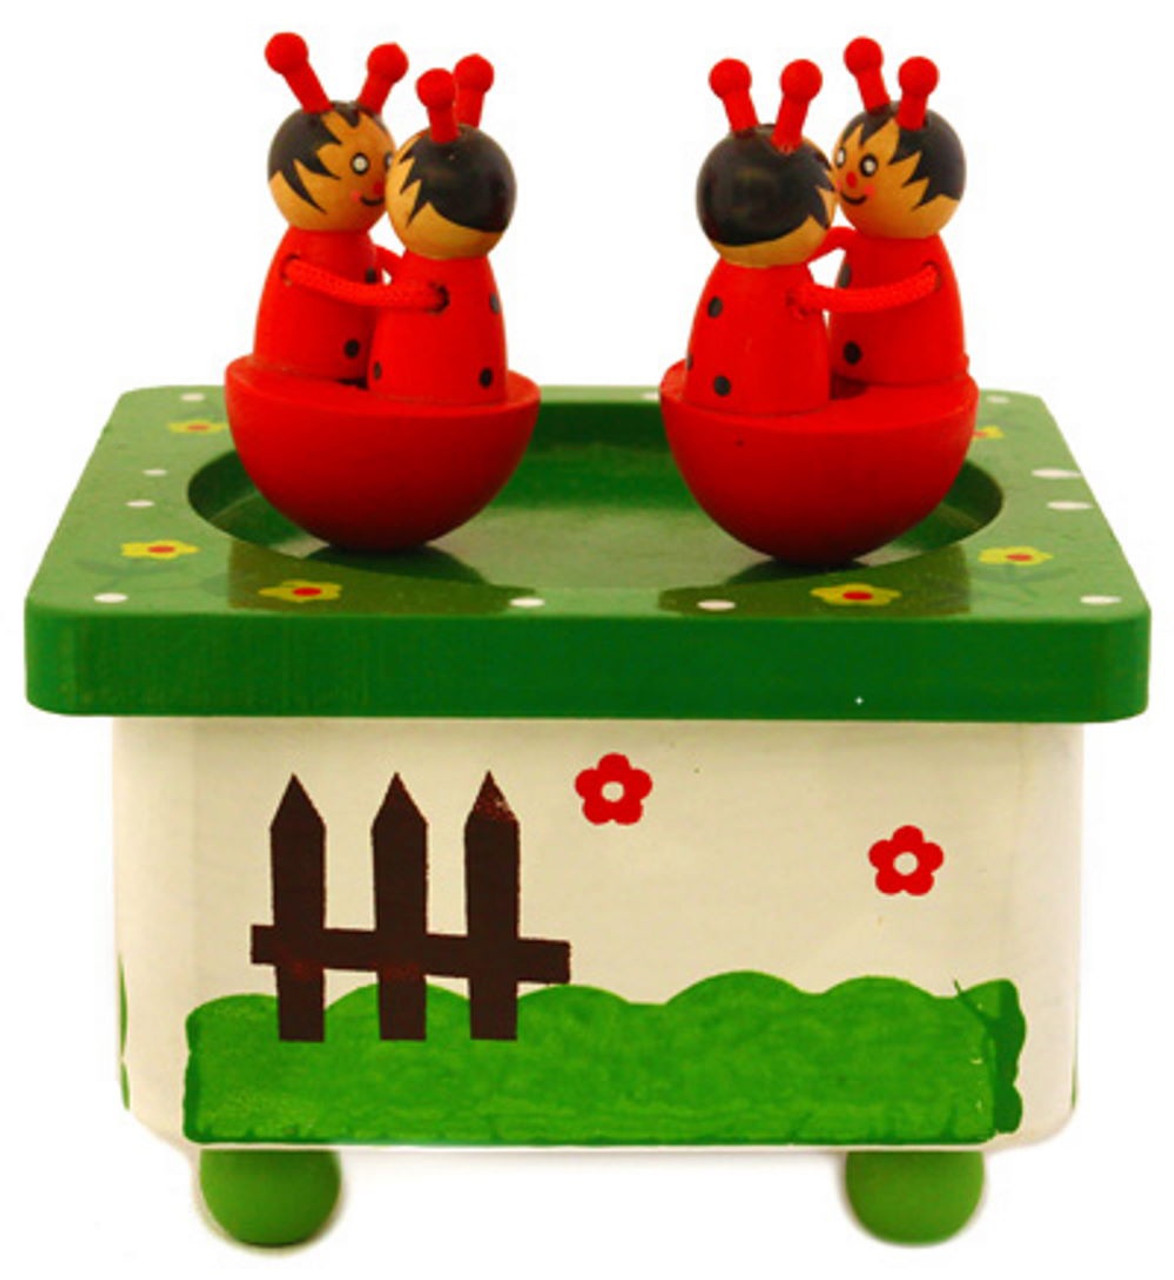 Lucky Tree Wooden Music Box at Baby Barn Discounts This beautiful wooden music box by Lucky Tree is a fantastic toy. Just turn the key at the bottom of the box and watch the animals dance and spin to music